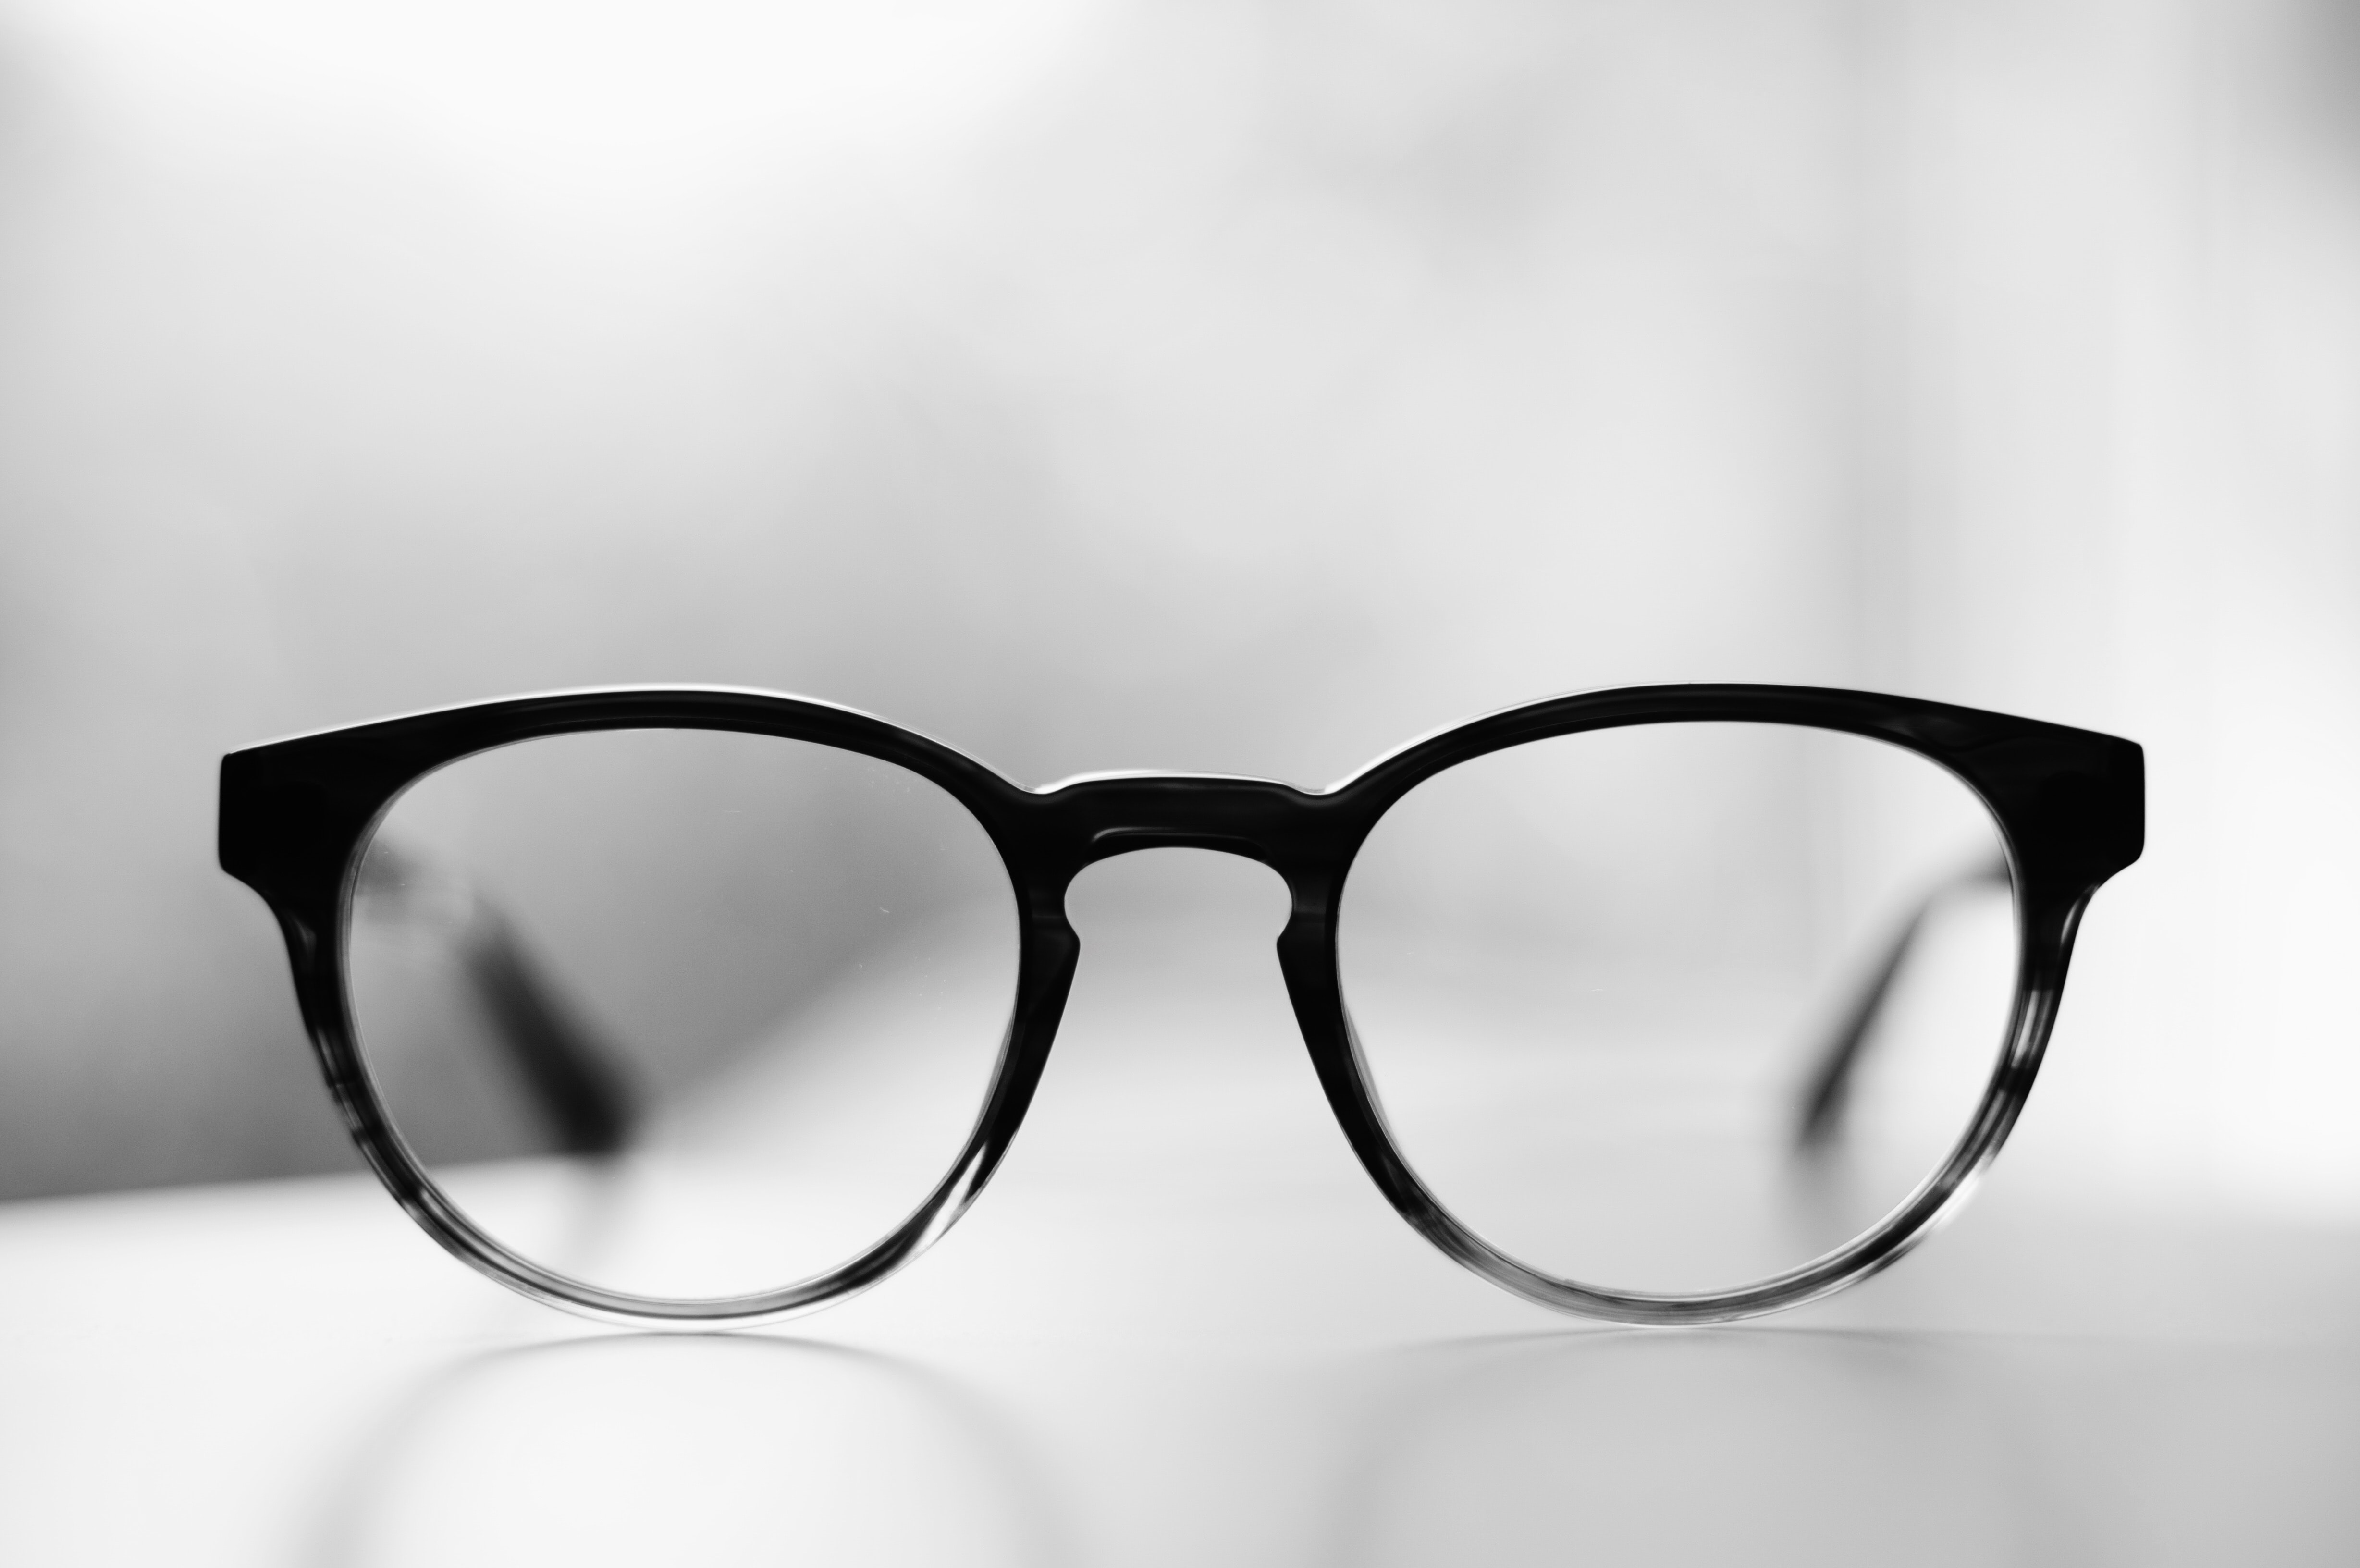 A pair of glasses in black frames on a white surface